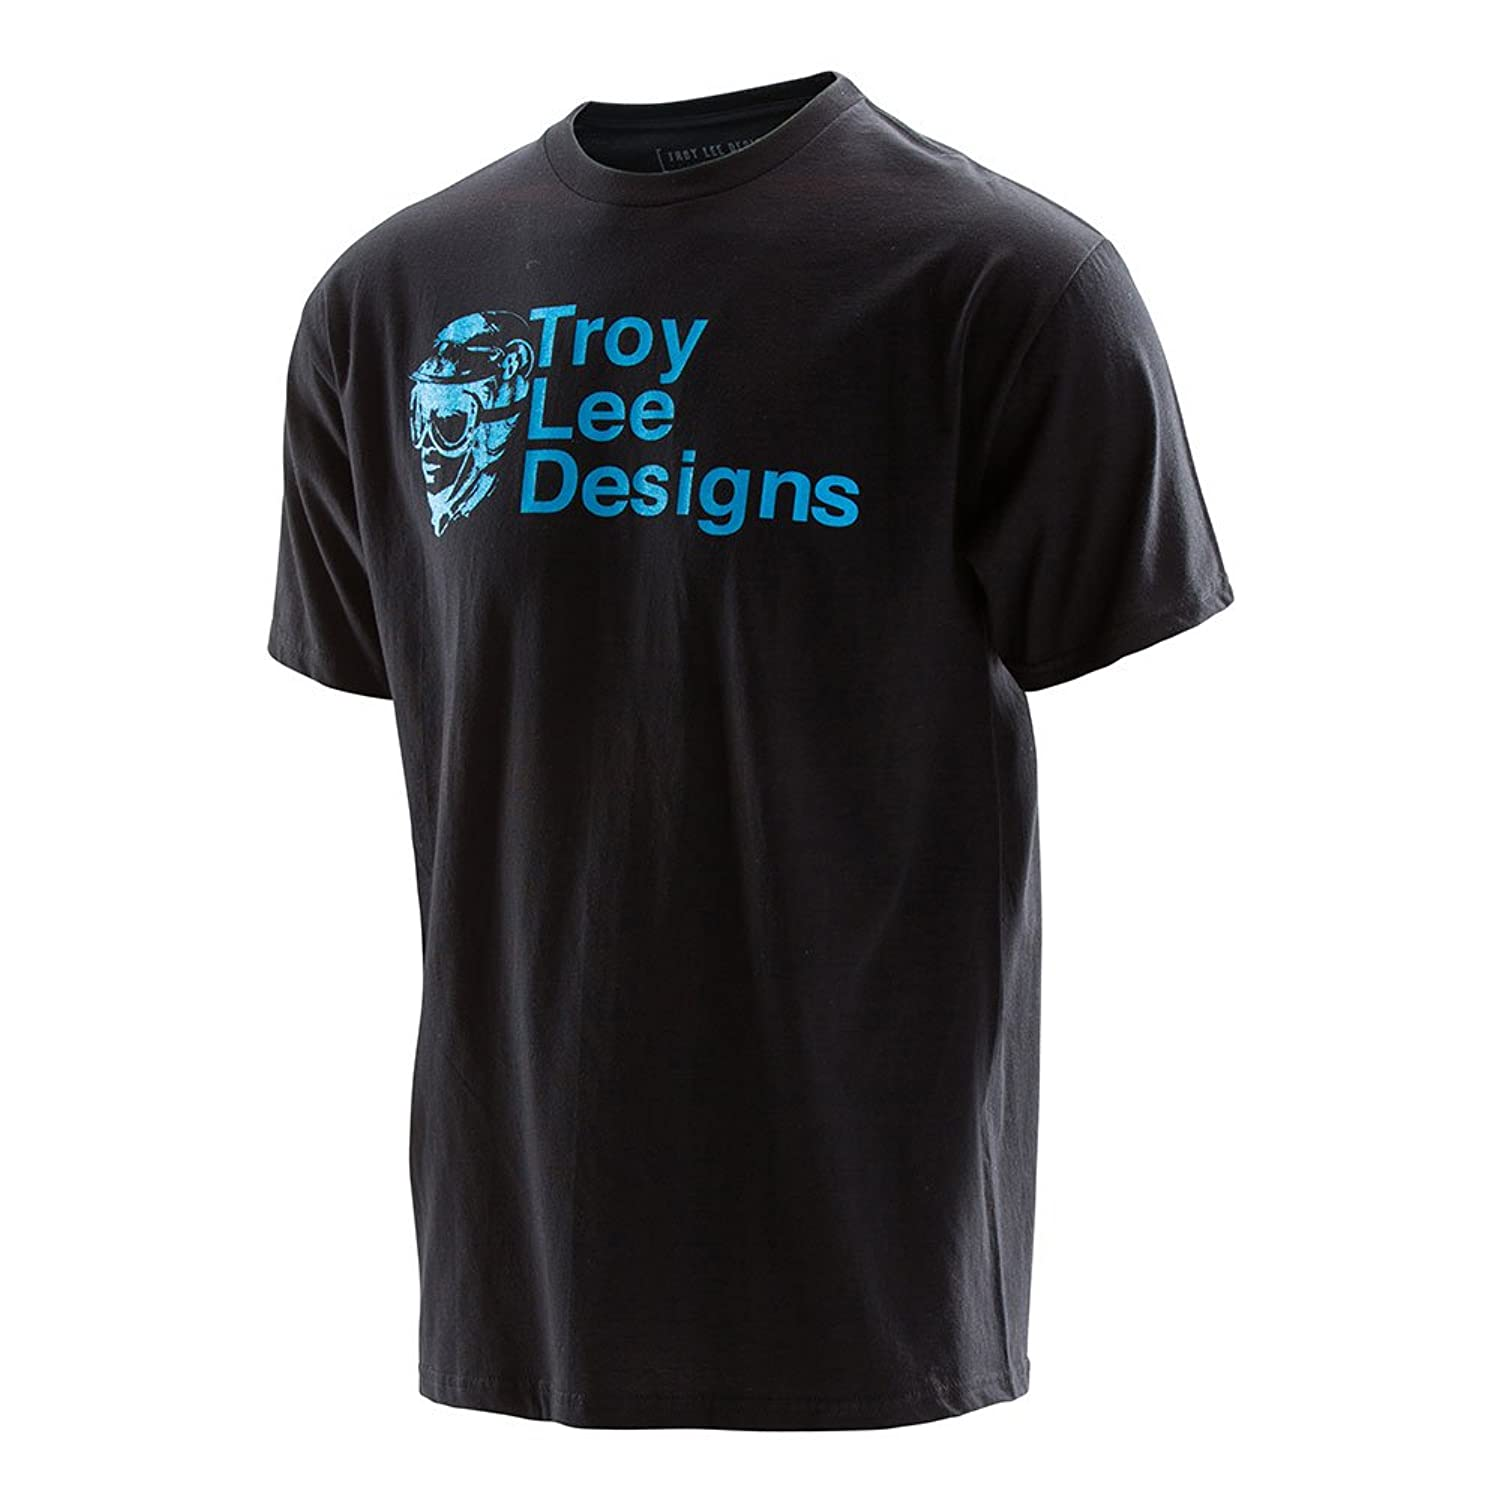 Troy Lee Designs Men's Then And Now Graphic T-Shirt